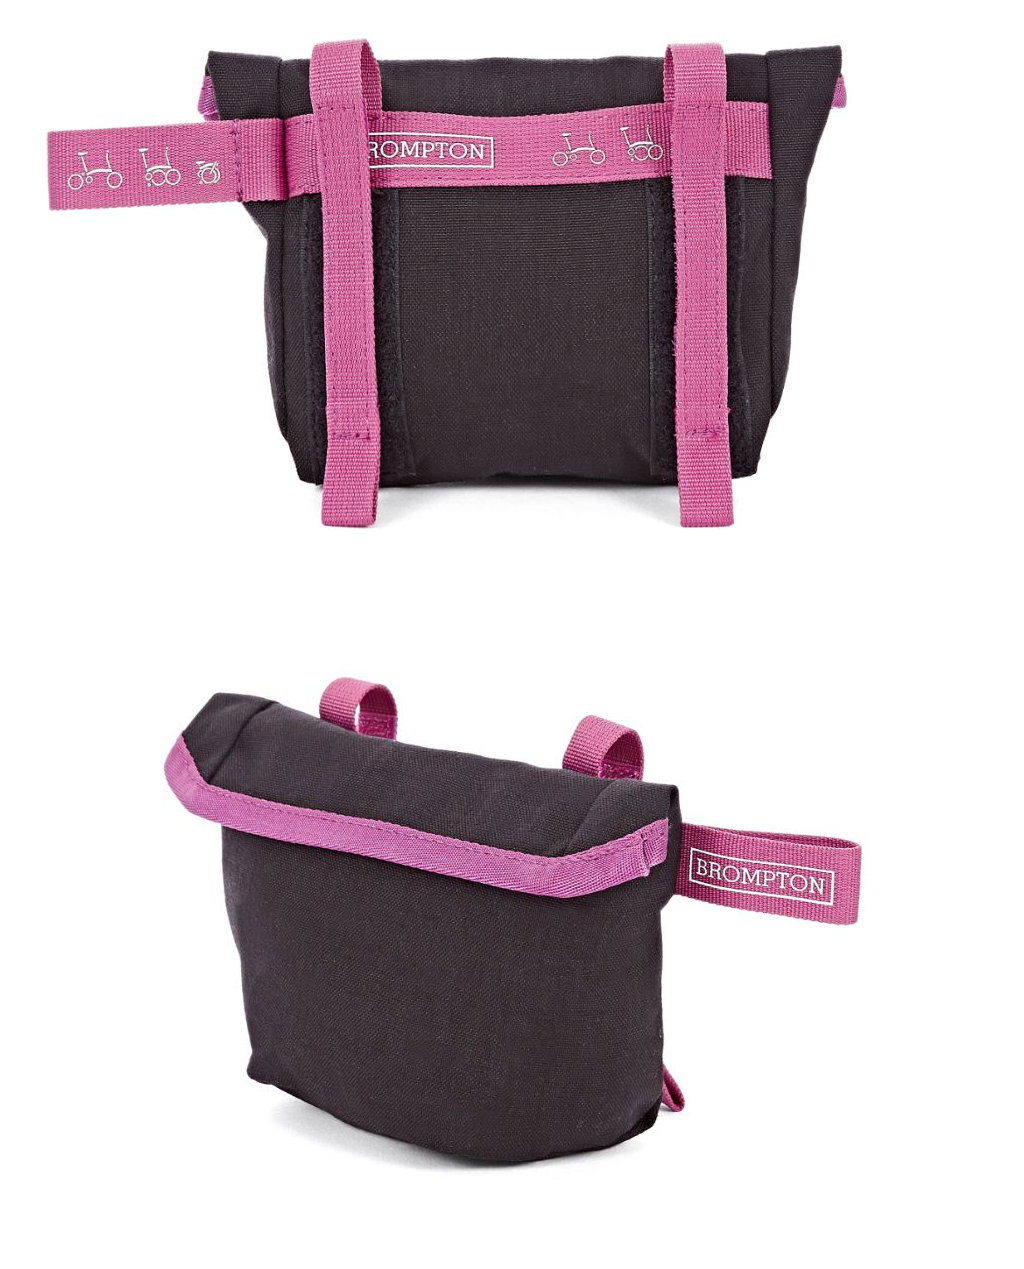 Q-Parts - Saddle Pouch - Black/Berry Crush